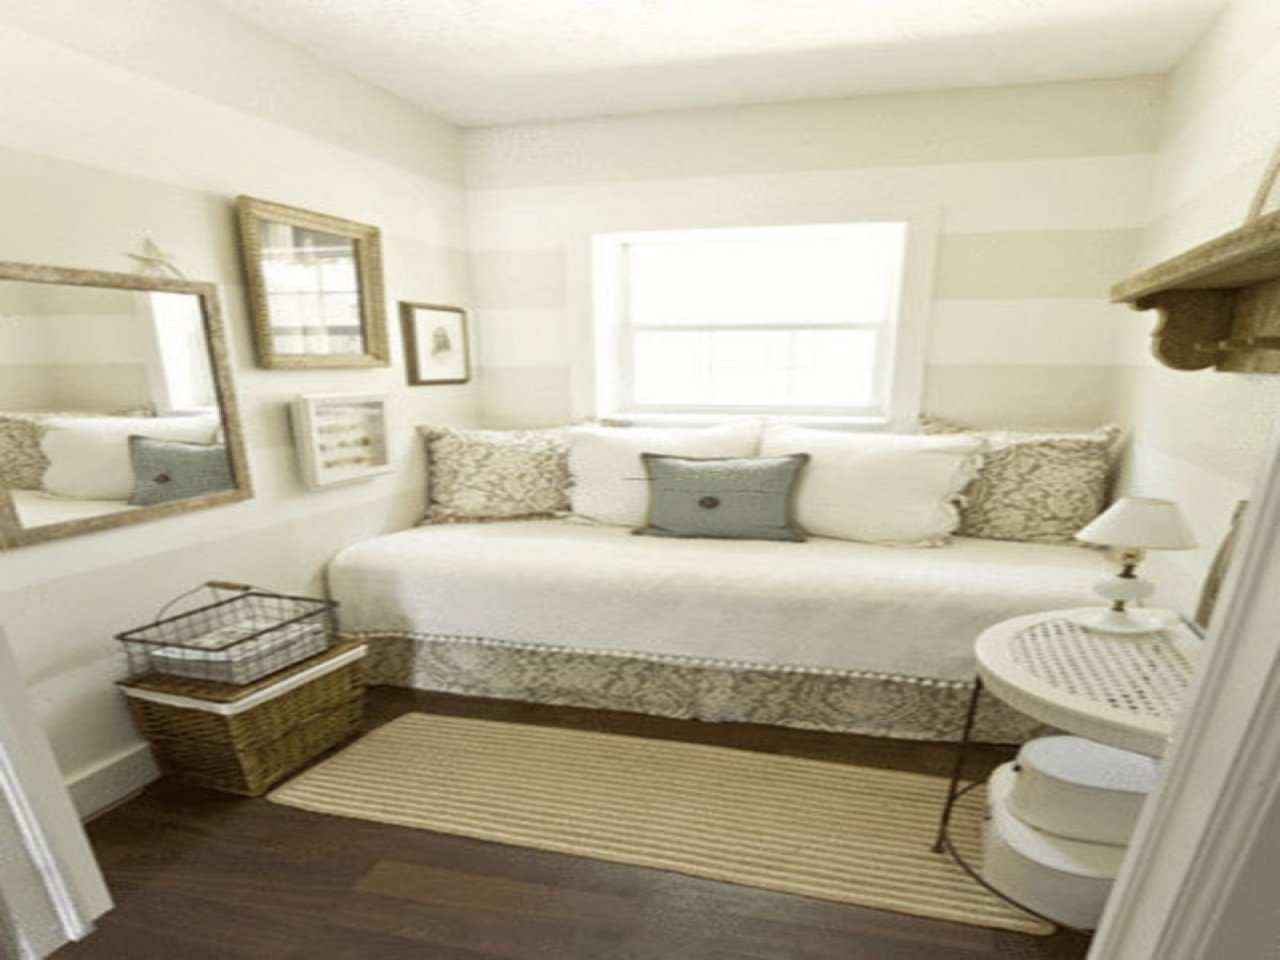 10 Elegant Ideas For A Spare Room spare room ideas pictures small spare room ideas home design 2021